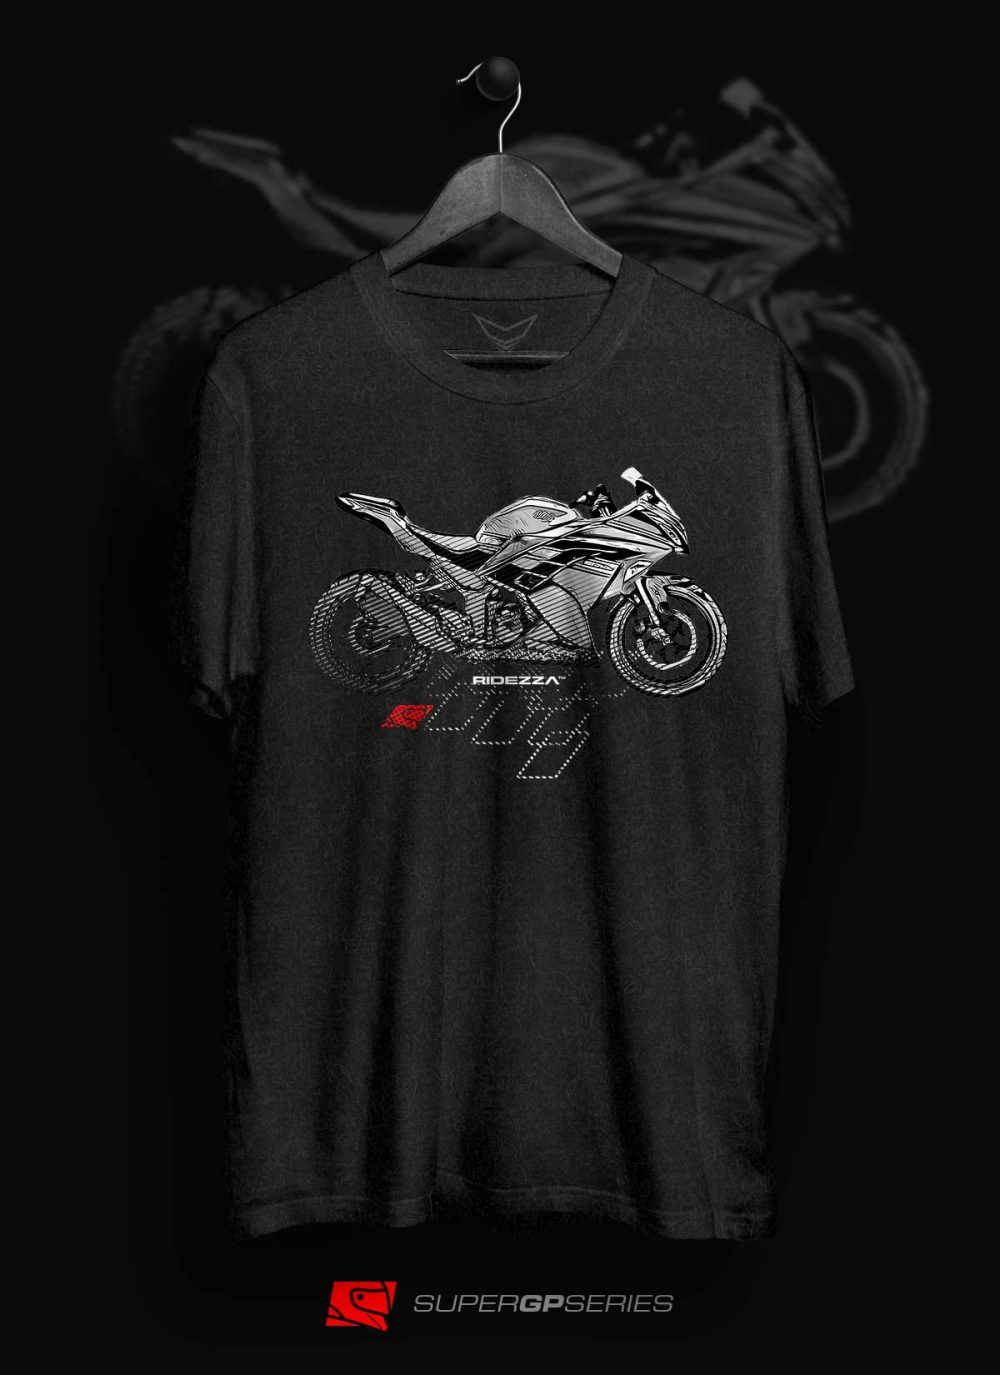 Ridezza Ninja 300 SuperGP Series T-Shirt